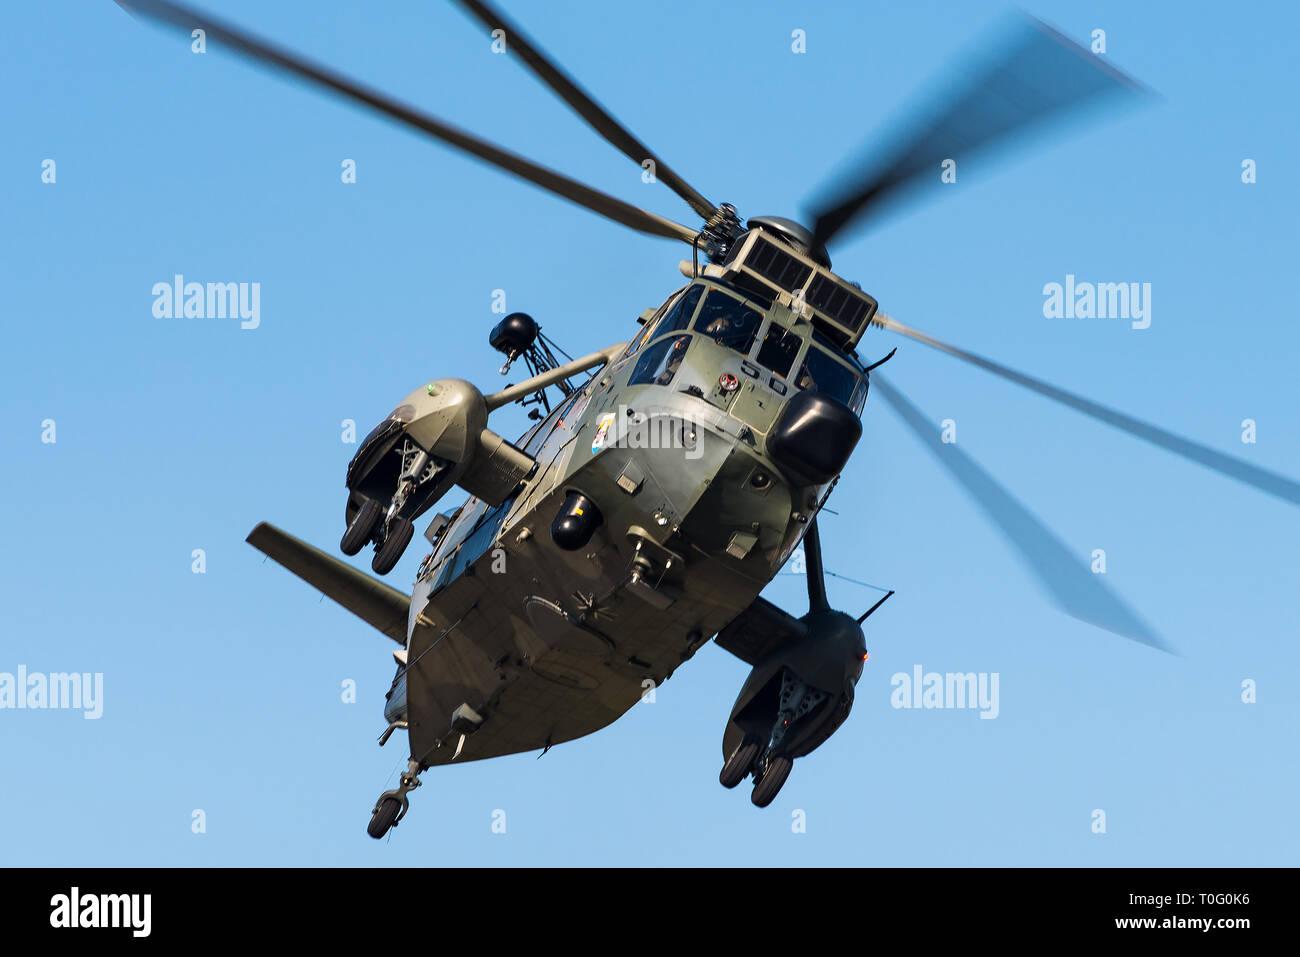 A Westland Sea King Mk.41 search and rescue helicopter from the Nordholz Naval Airbase of the German Navy. - Stock Image